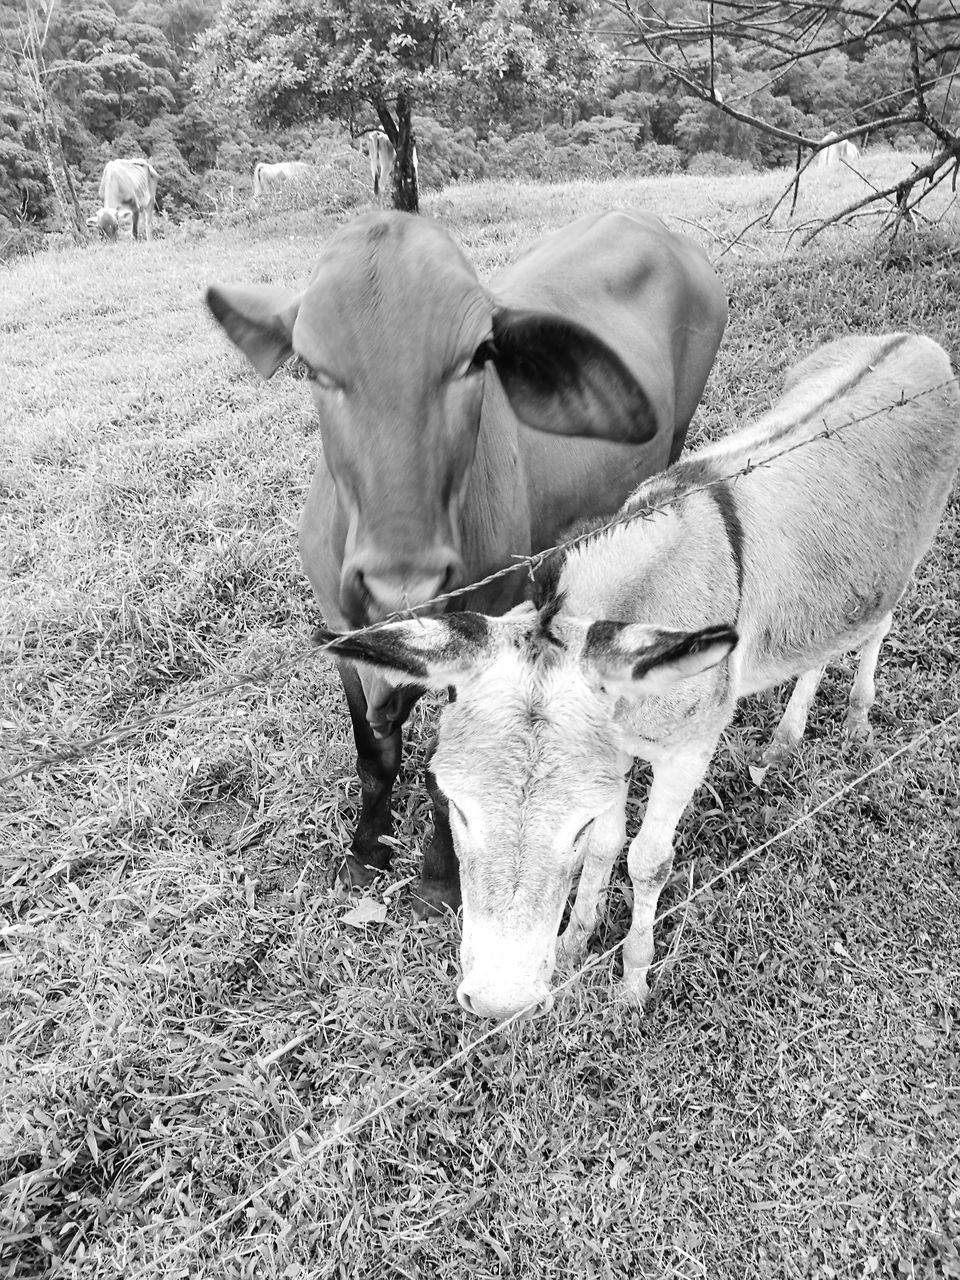 animal themes, domestic animals, mammal, cow, livestock, two animals, field, cattle, grass, no people, outdoors, nature, day, farm animal, full length